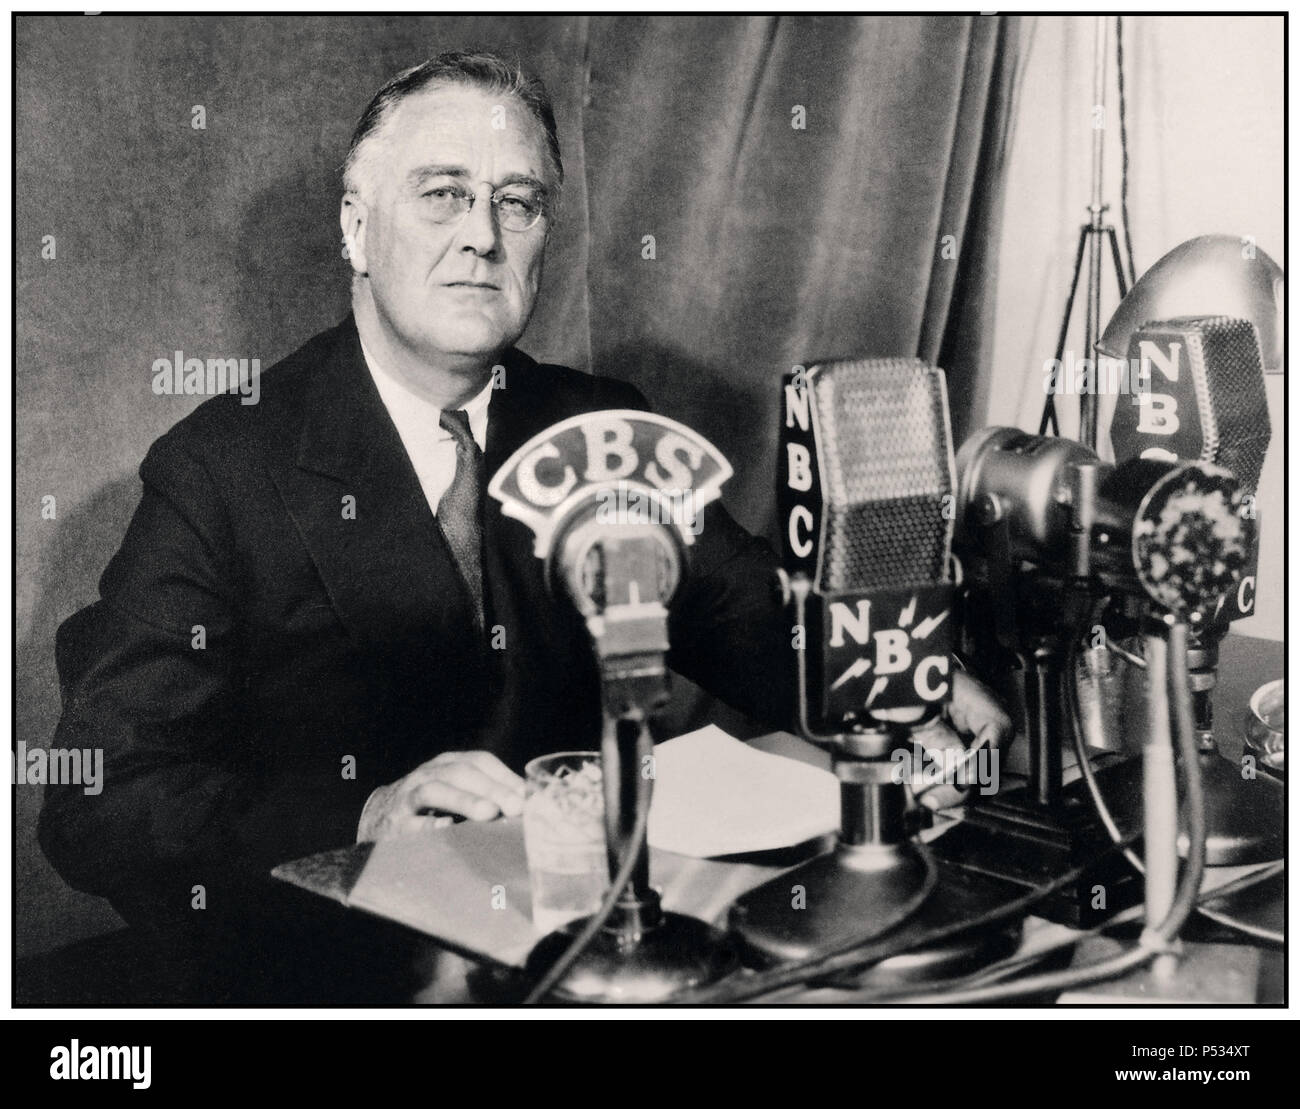 """Vintage 1930's Image of FDR Franklin D. Roosevelt giving a radio broadcast (""""fireside chat"""") September 1934. Franklin Delano Roosevelt Sr., often referred to by his initials FDR, was an American statesman and political leader who served as the 32nd President of the United States from 1933 until his death in 1945. - Stock Image"""